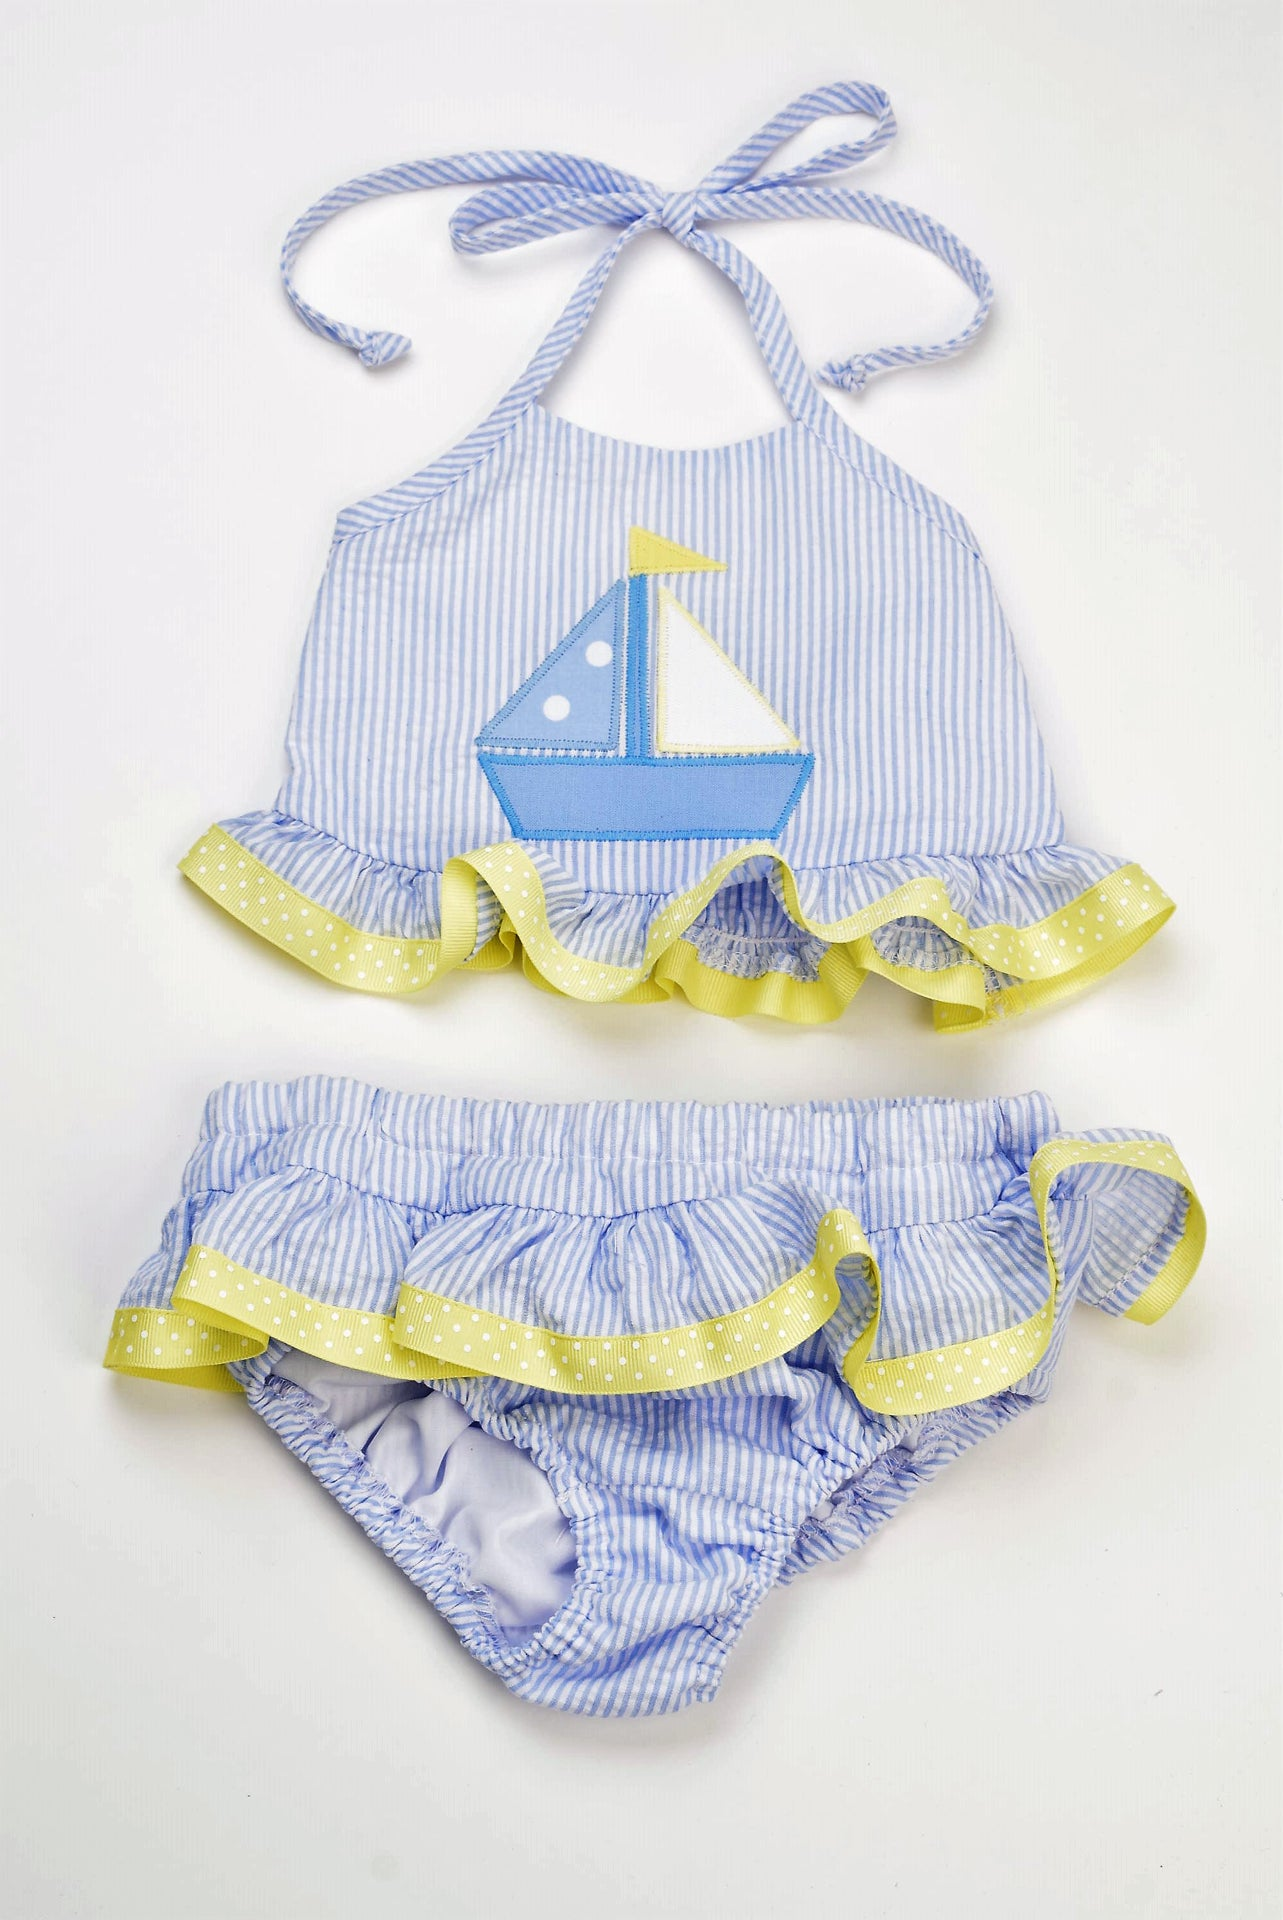 TWO PIECE SWIMSUIT - SAILBOAT - Made by McNamara